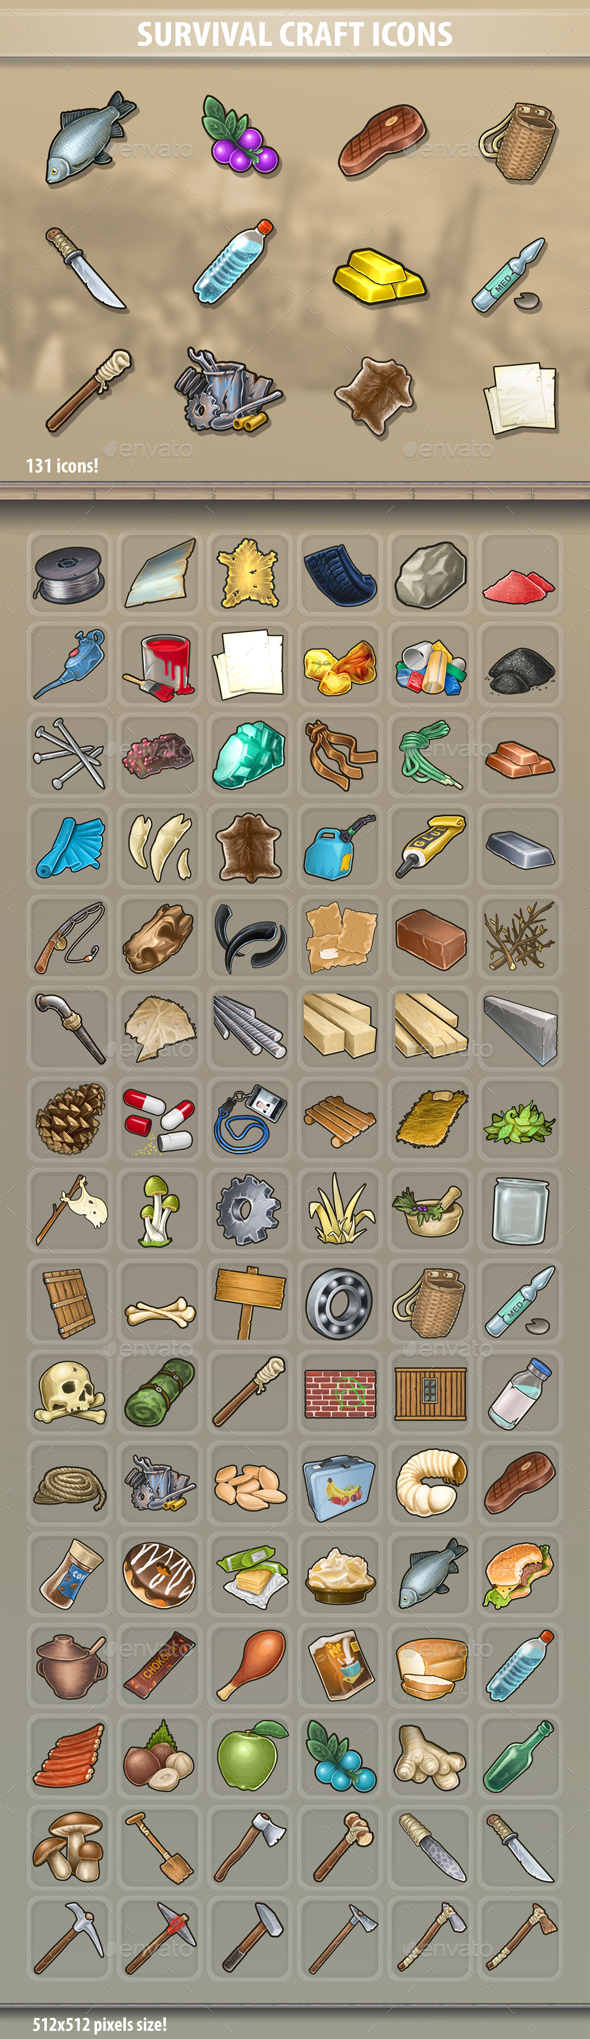 Survival Craft Icons